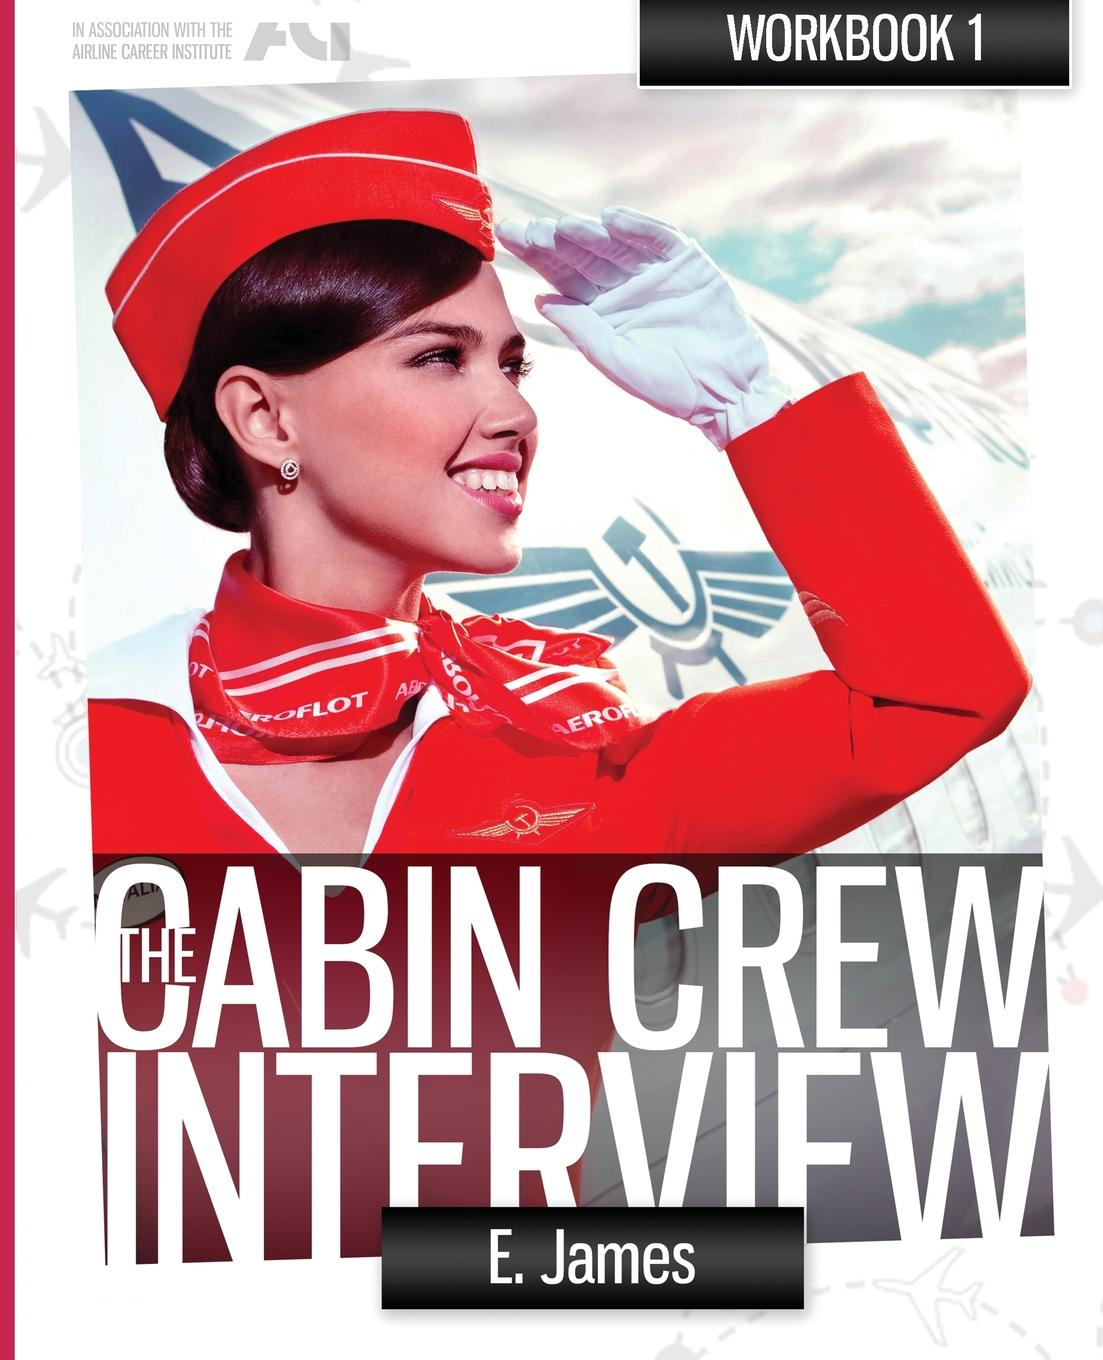 Sophie Levinsteen Pass the cabin crew interview - workbook the zoomable universe a step by step tour through cosmic scale from the infinite to the infinitesimal